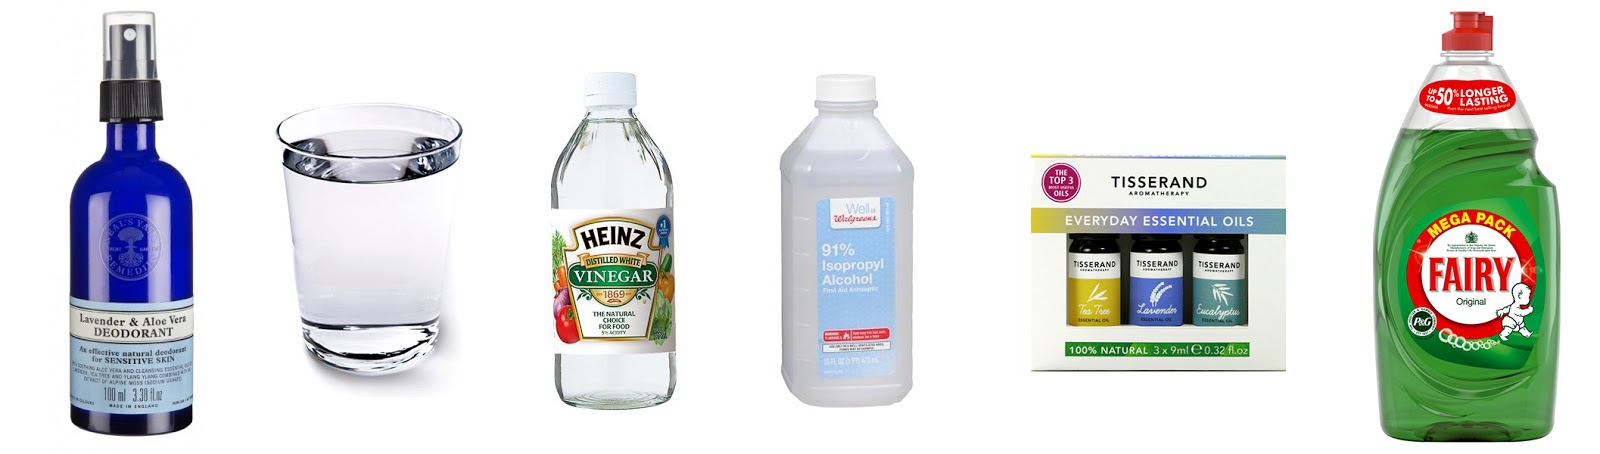 5 steps to a squeaky clean house (& DIY laminate floor cleaner)